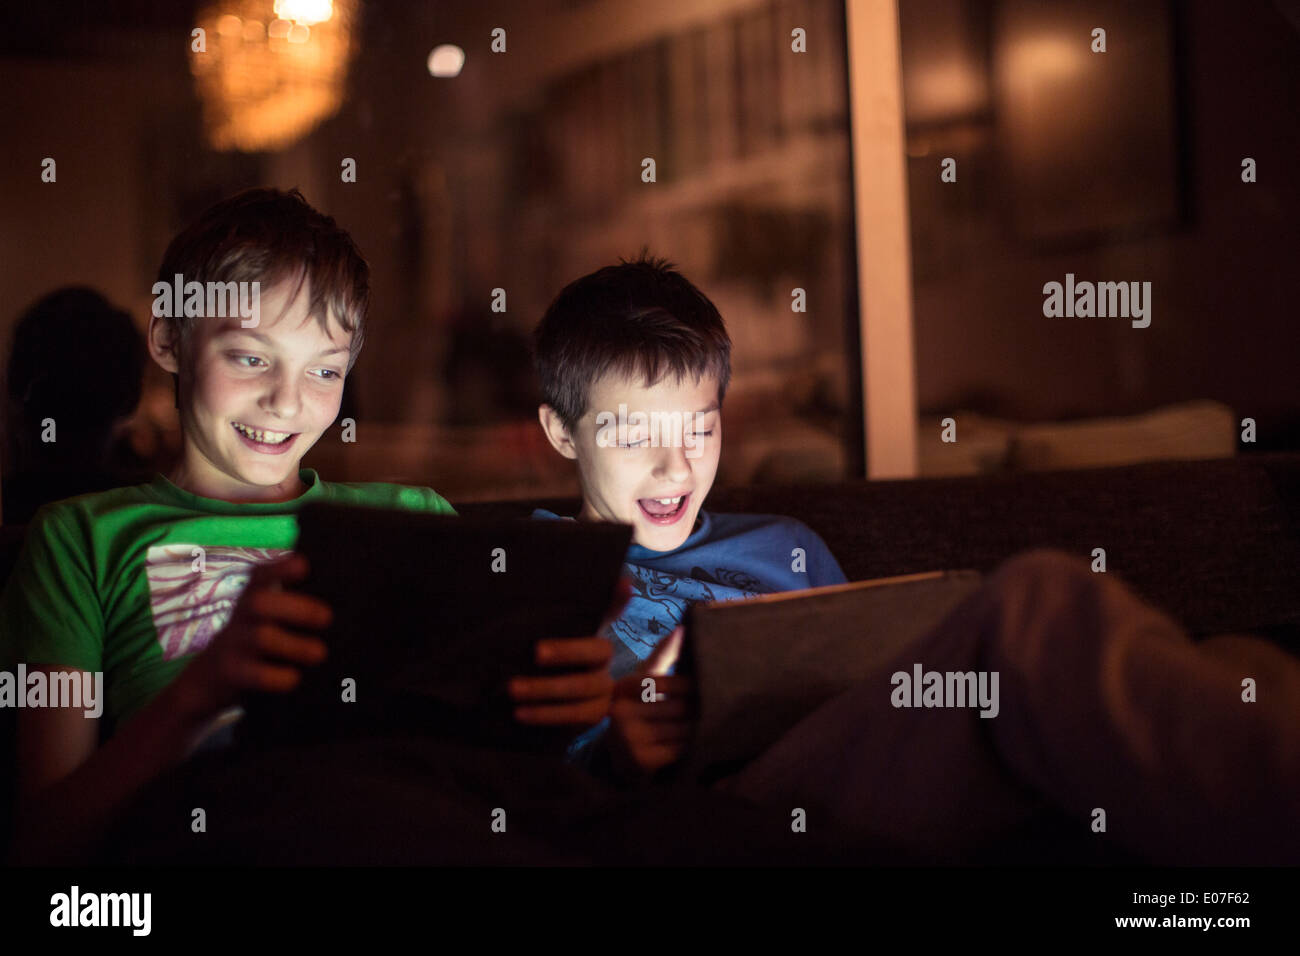 Two boys playing with digital tablets - Stock Image